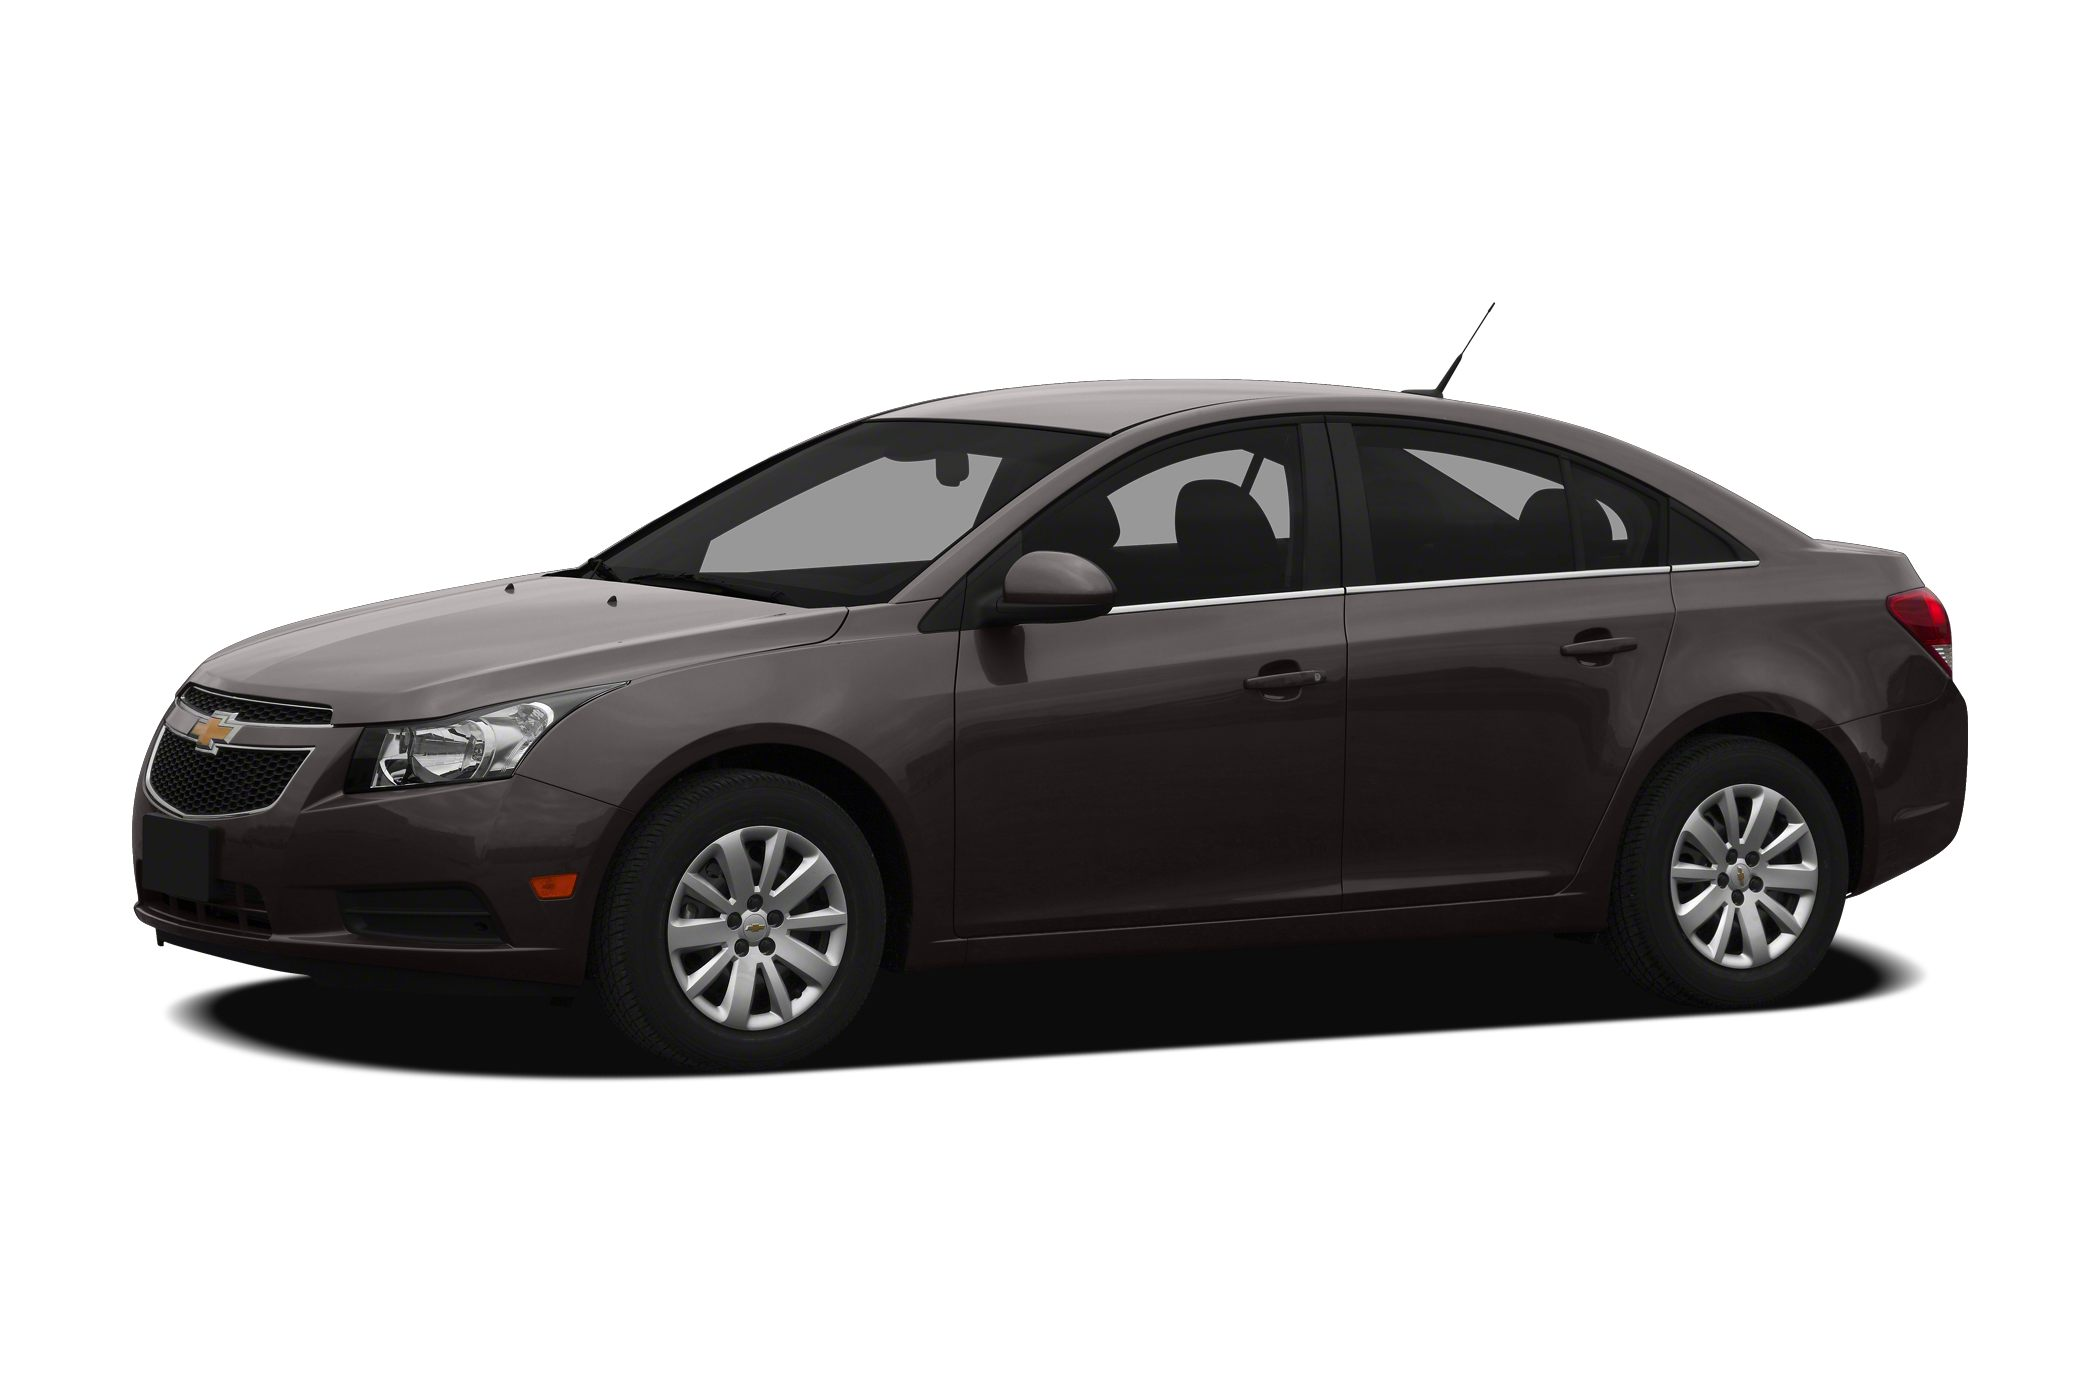 2012 Chevrolet Cruze LT Sedan for sale in El Paso for $12,996 with 60,132 miles